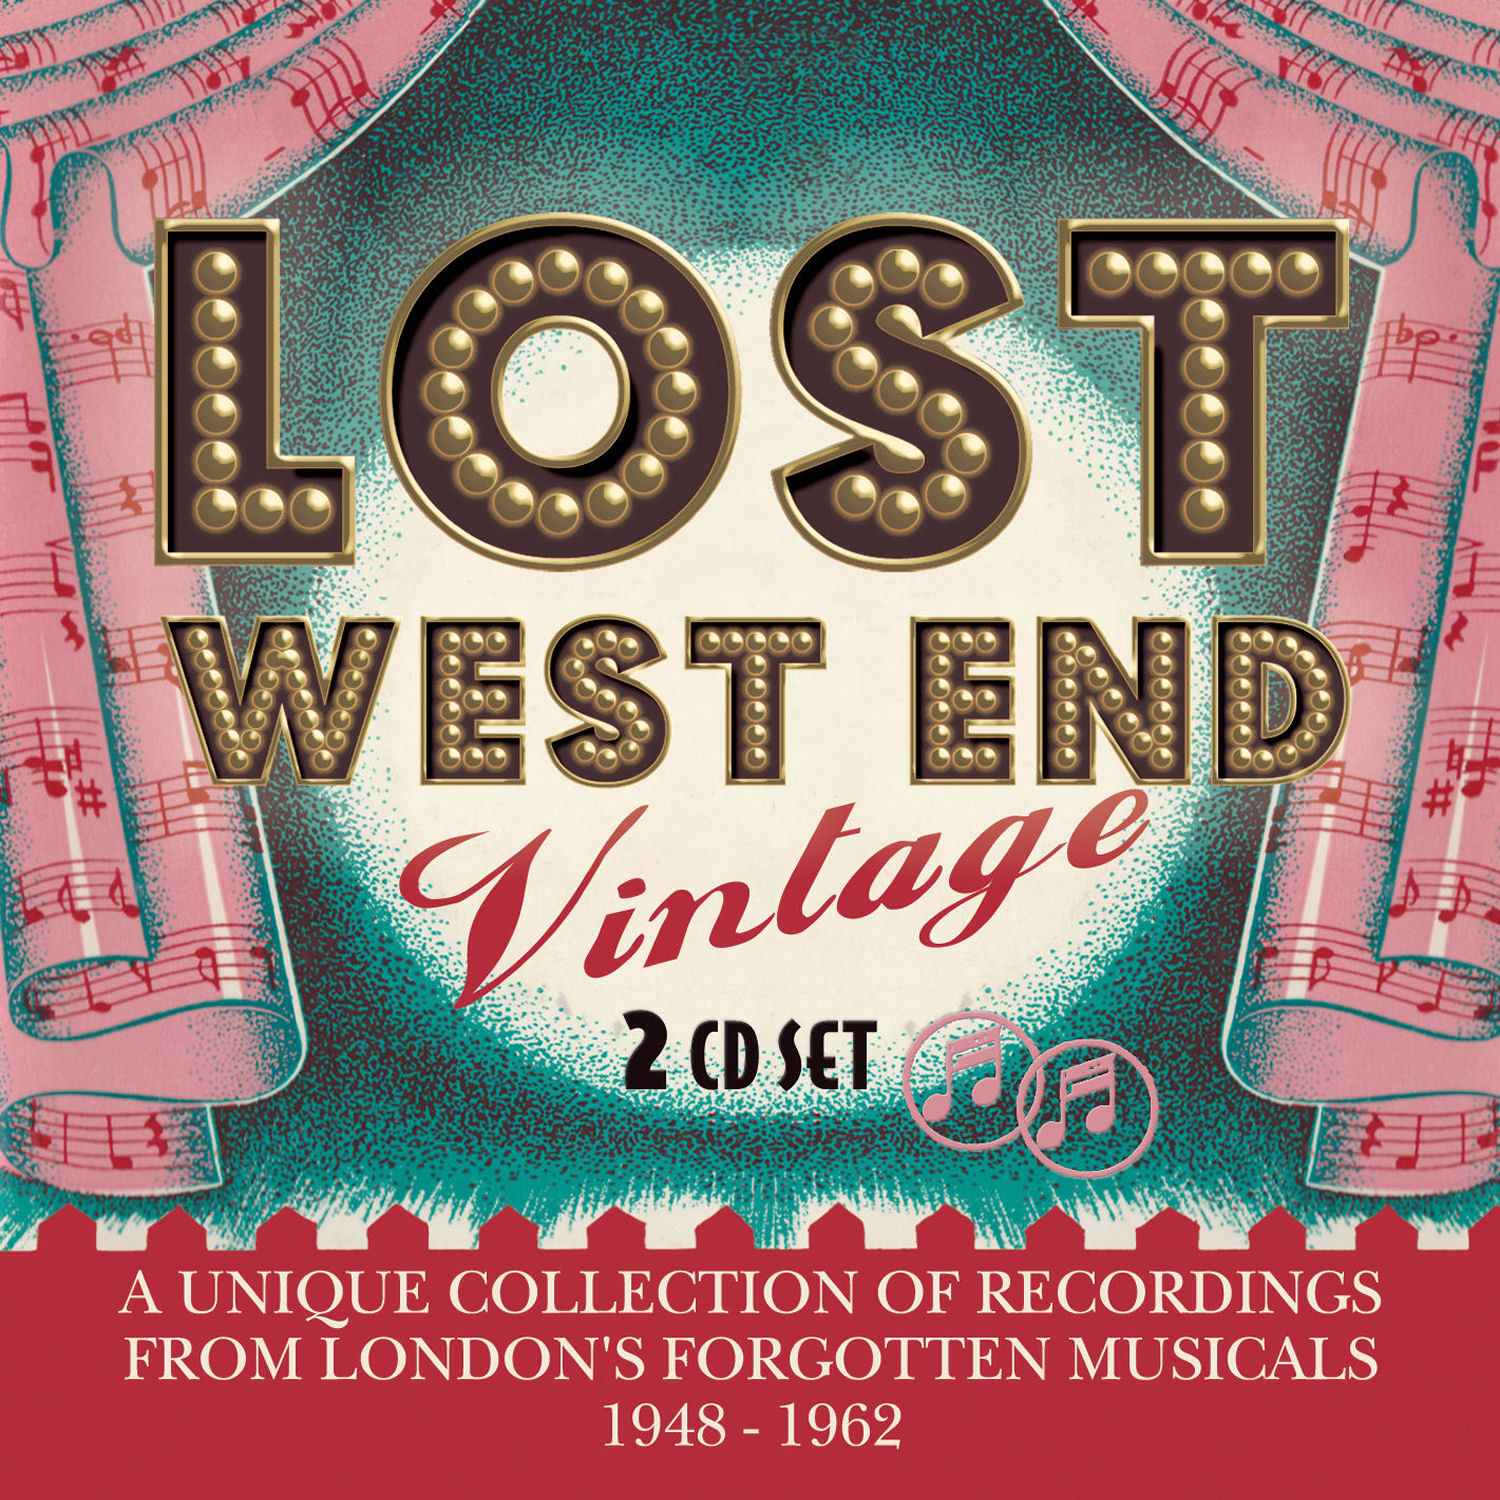 BWW Review: LOST WEST END VINTAGE, Stage Door Records